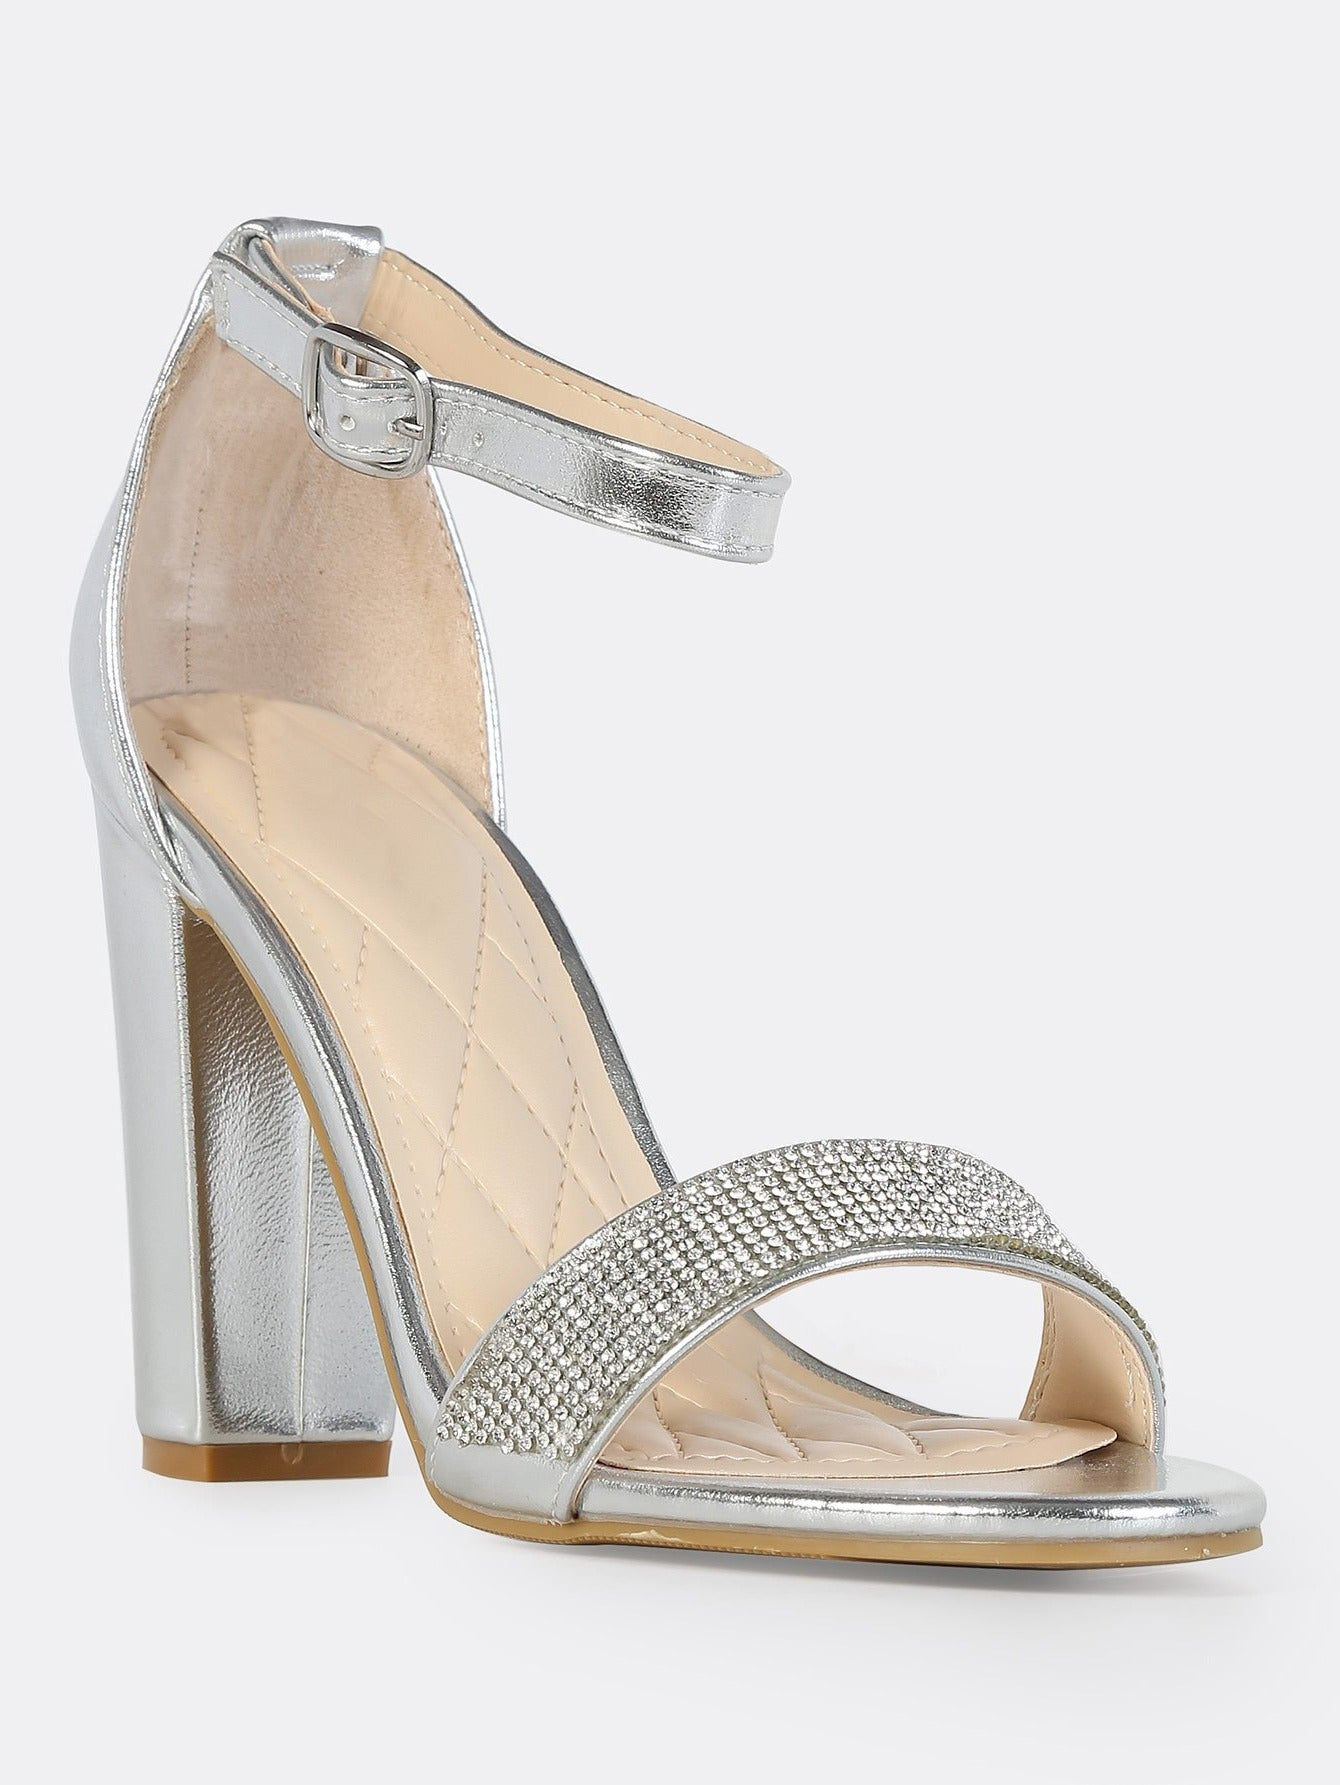 20f4f989354 Bamboo Frenzy-54s Silver Open Toe Block Heel w  Ankle Strap – Manic ...